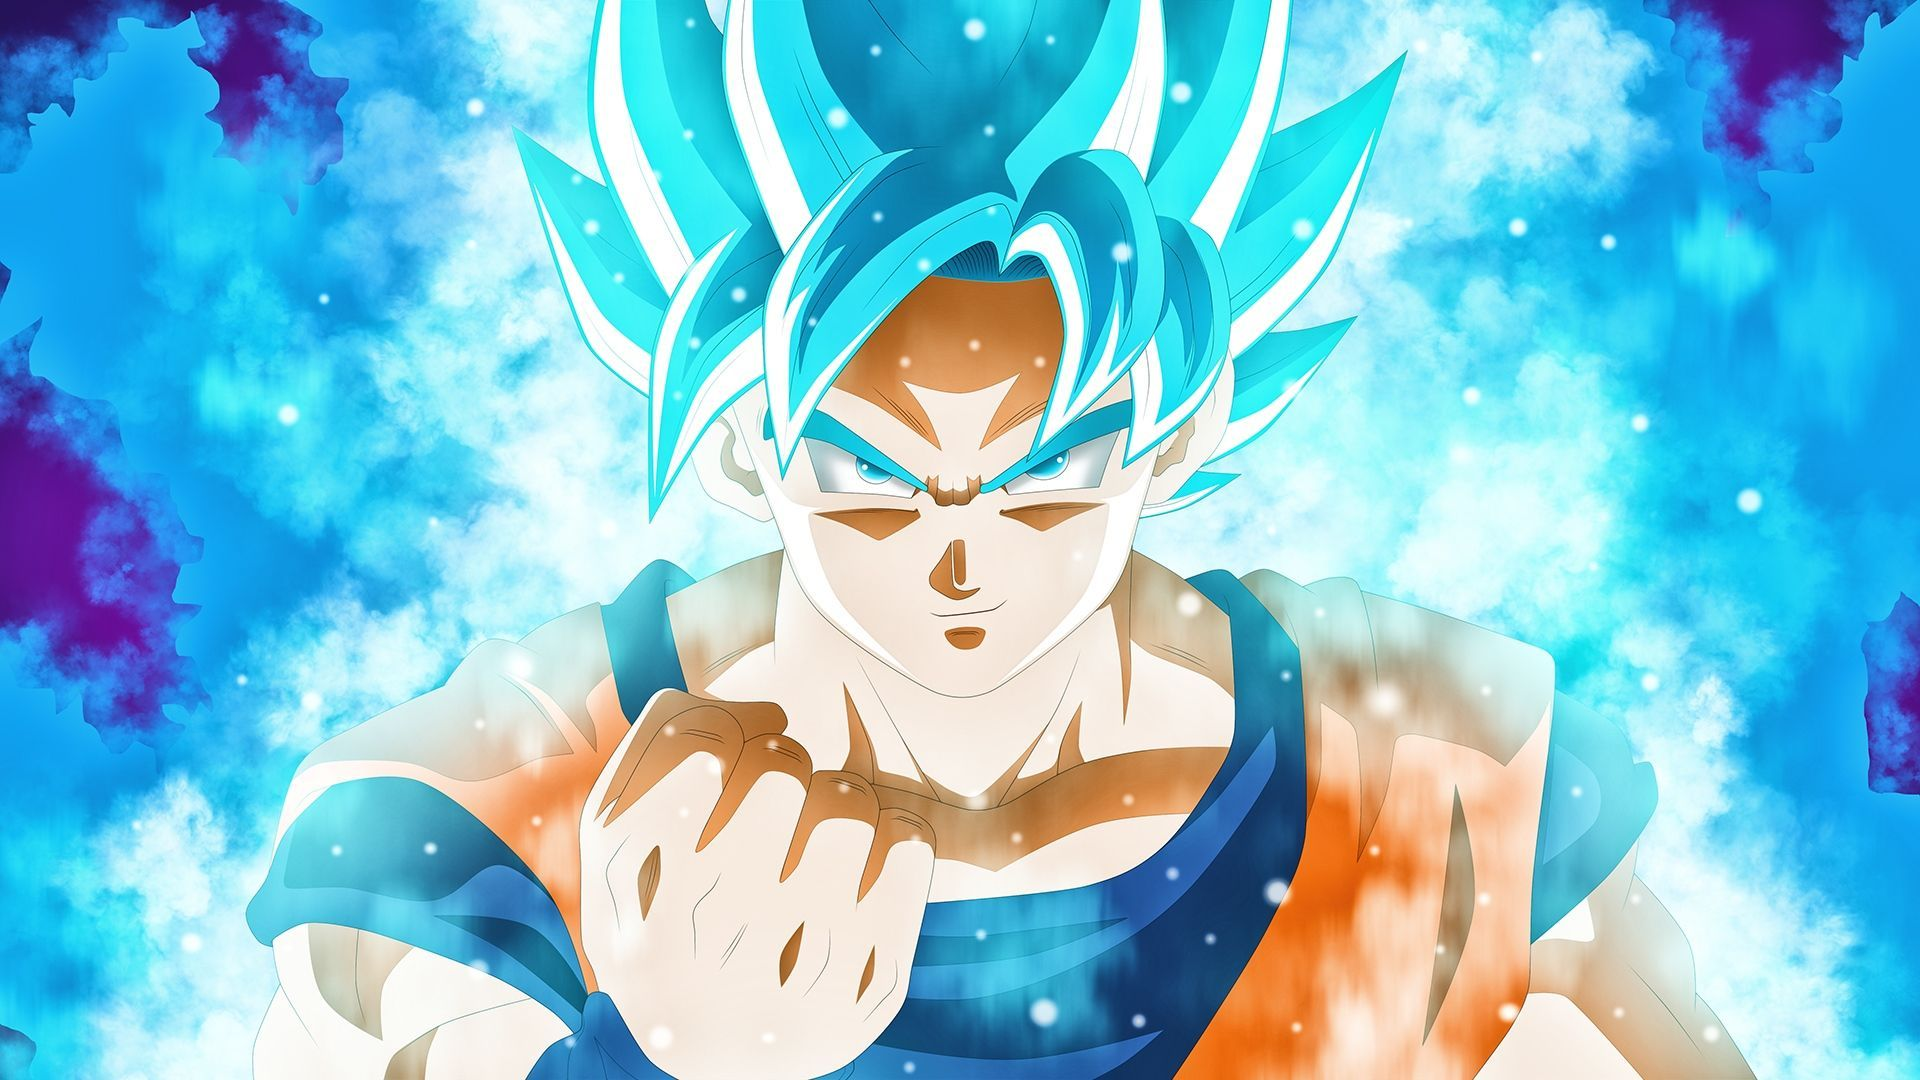 Blue Super Saiyan Goku Wallpapers Top Free Blue Super Saiyan Goku Backgrounds Wallpaperaccess